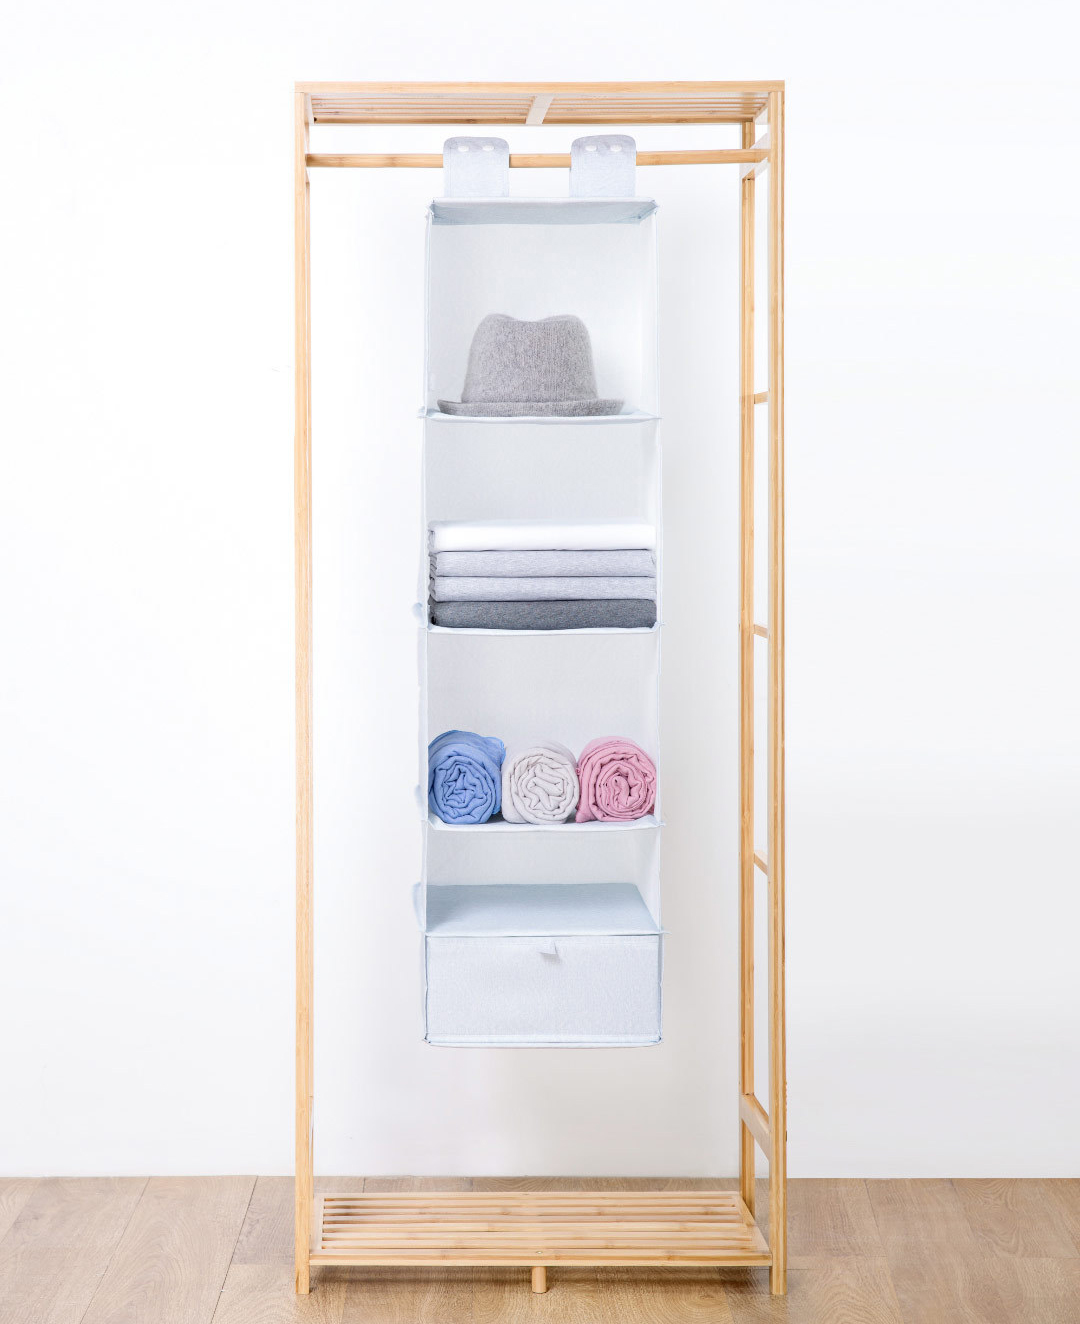 Nature Household 5 Compartment Hanging Fabric Storage Organizer Keeps Your Things Organised Several Layers